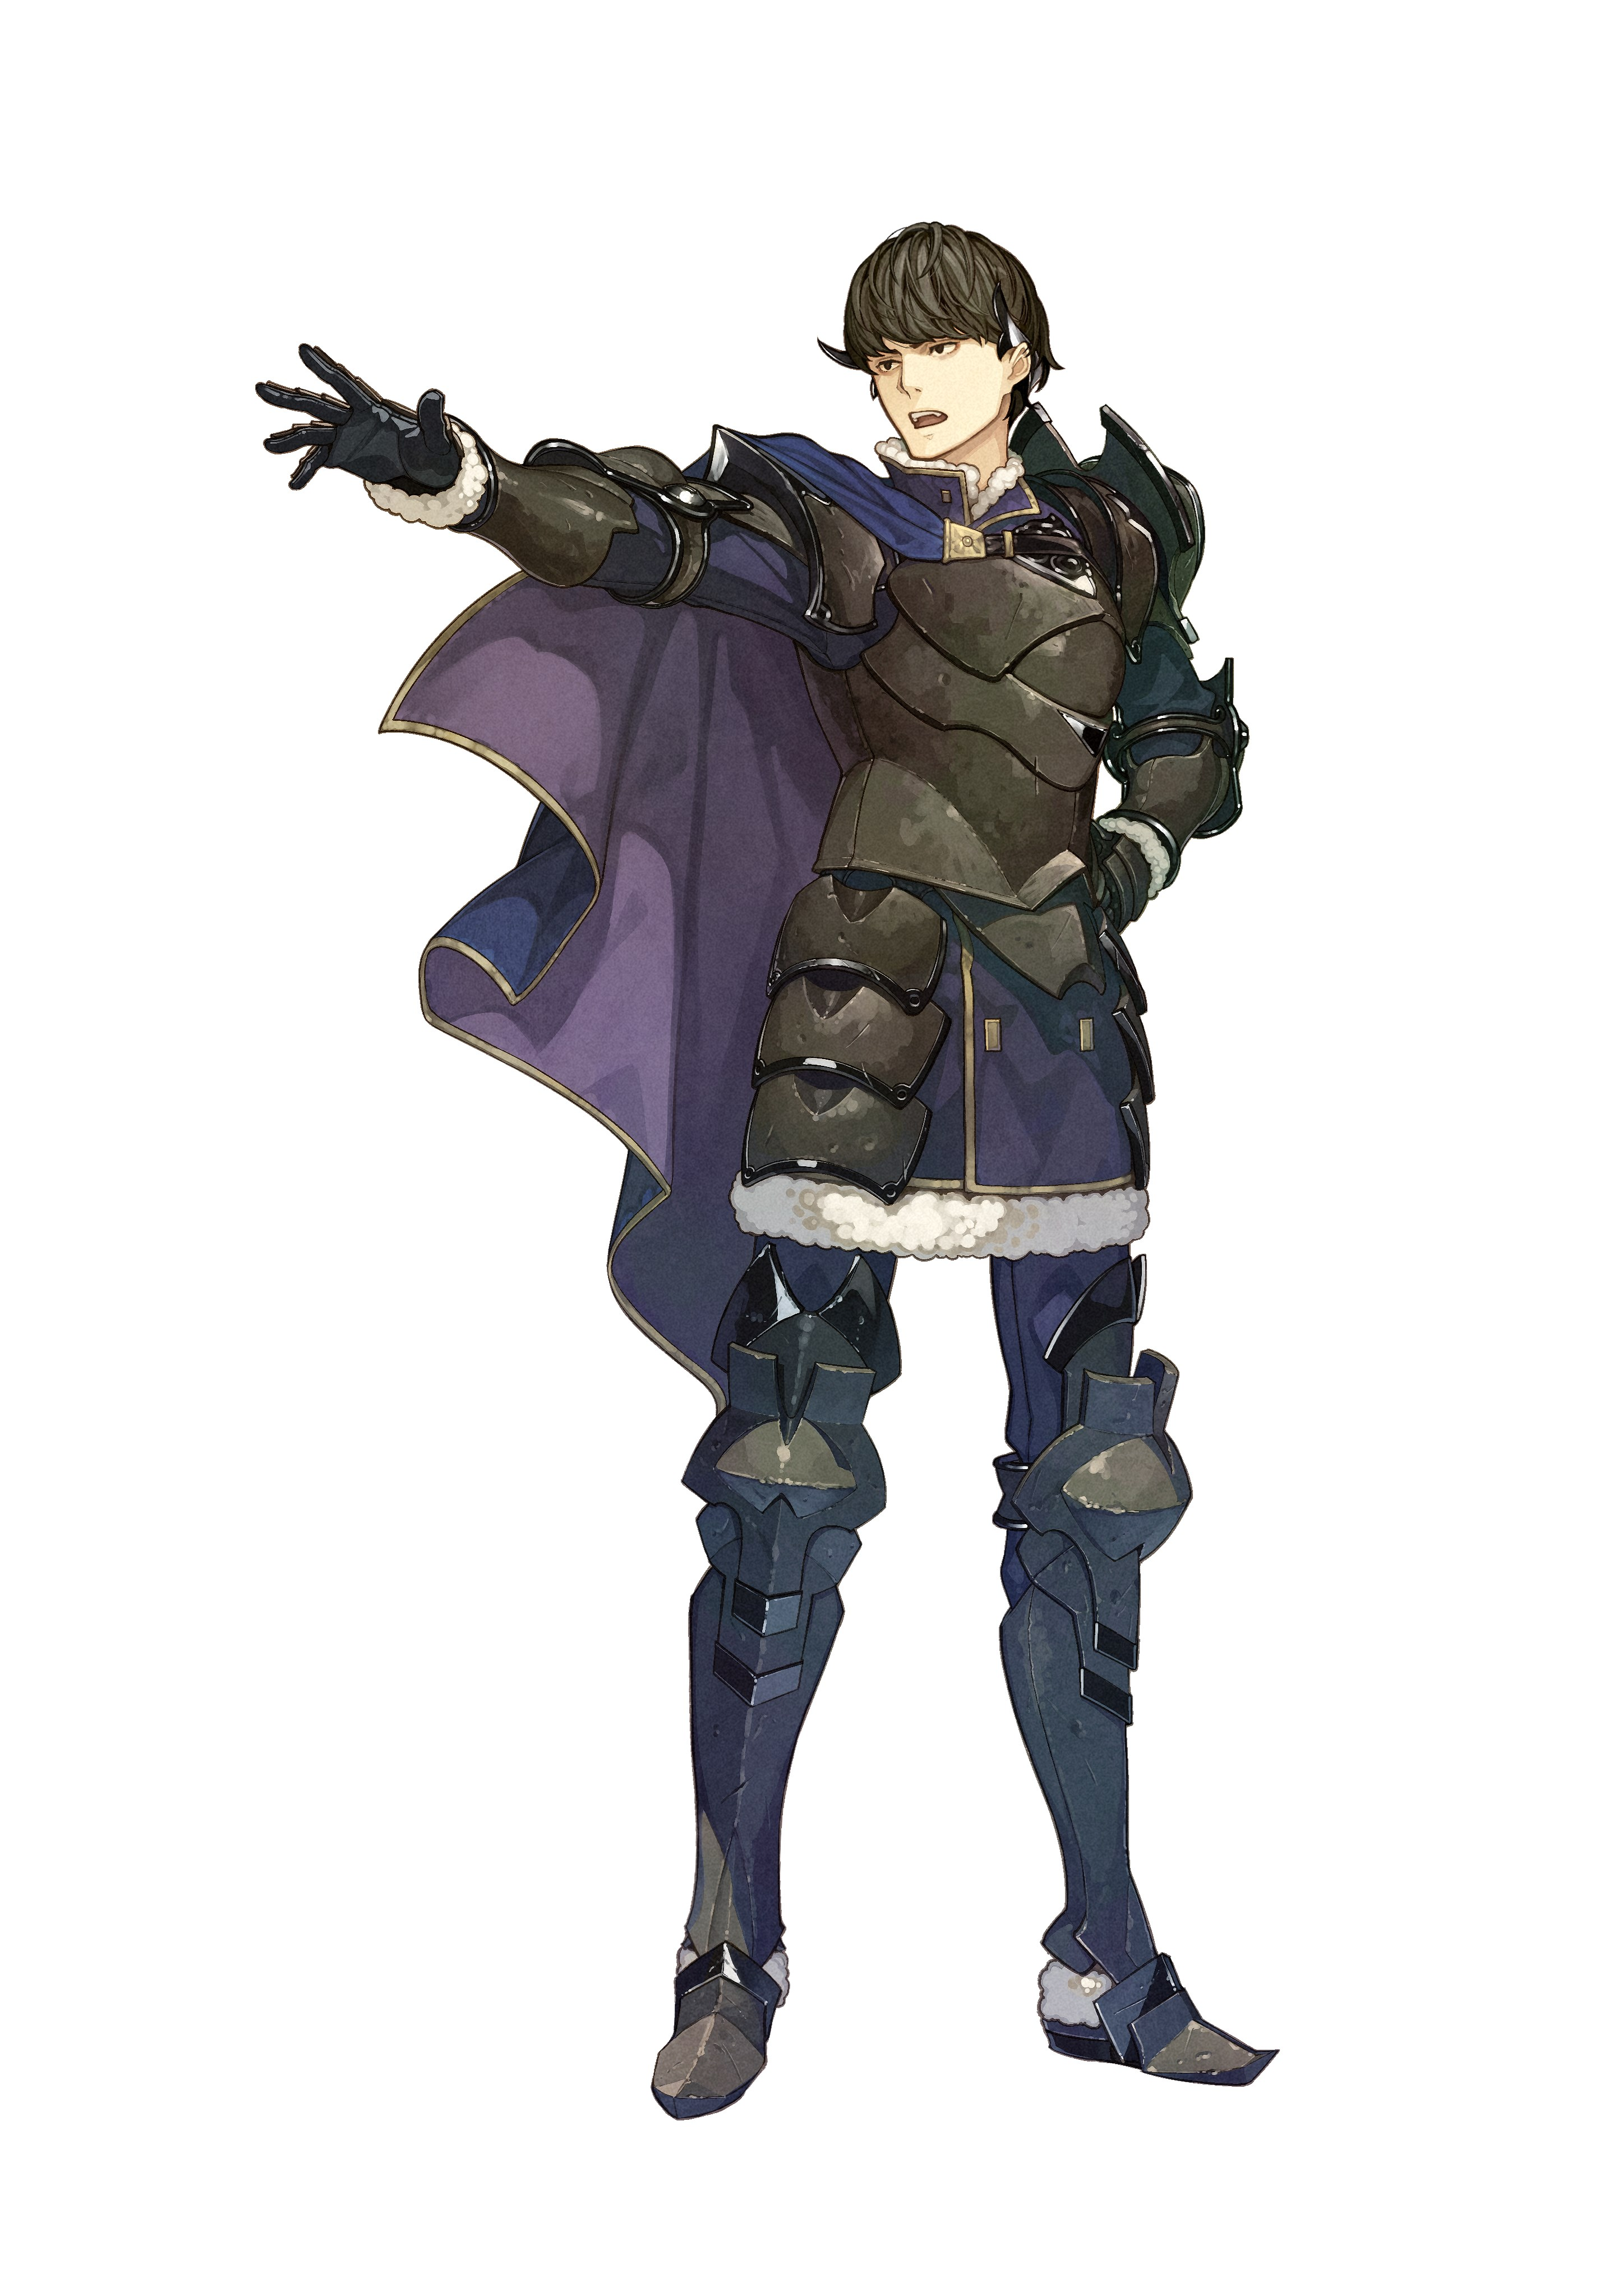 IMAGE(https://serenesforest.net/wp-content/gallery/fire-emblem-echoes-announcement/echoes-character6.jpg)